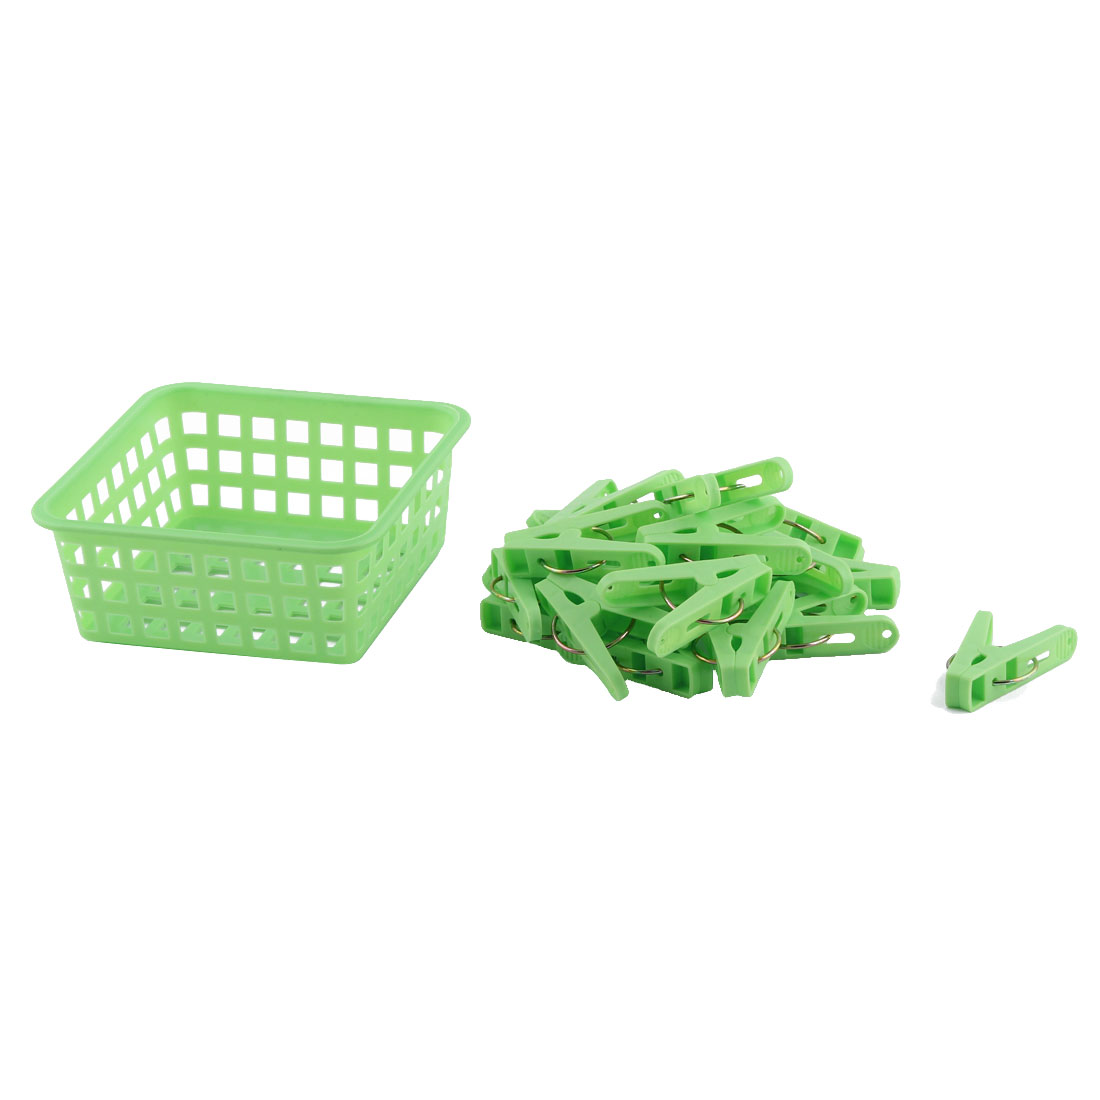 Home Clothes Hanging Pegs Clothespins Hanger Clips Green 20pcs w Storage Basket